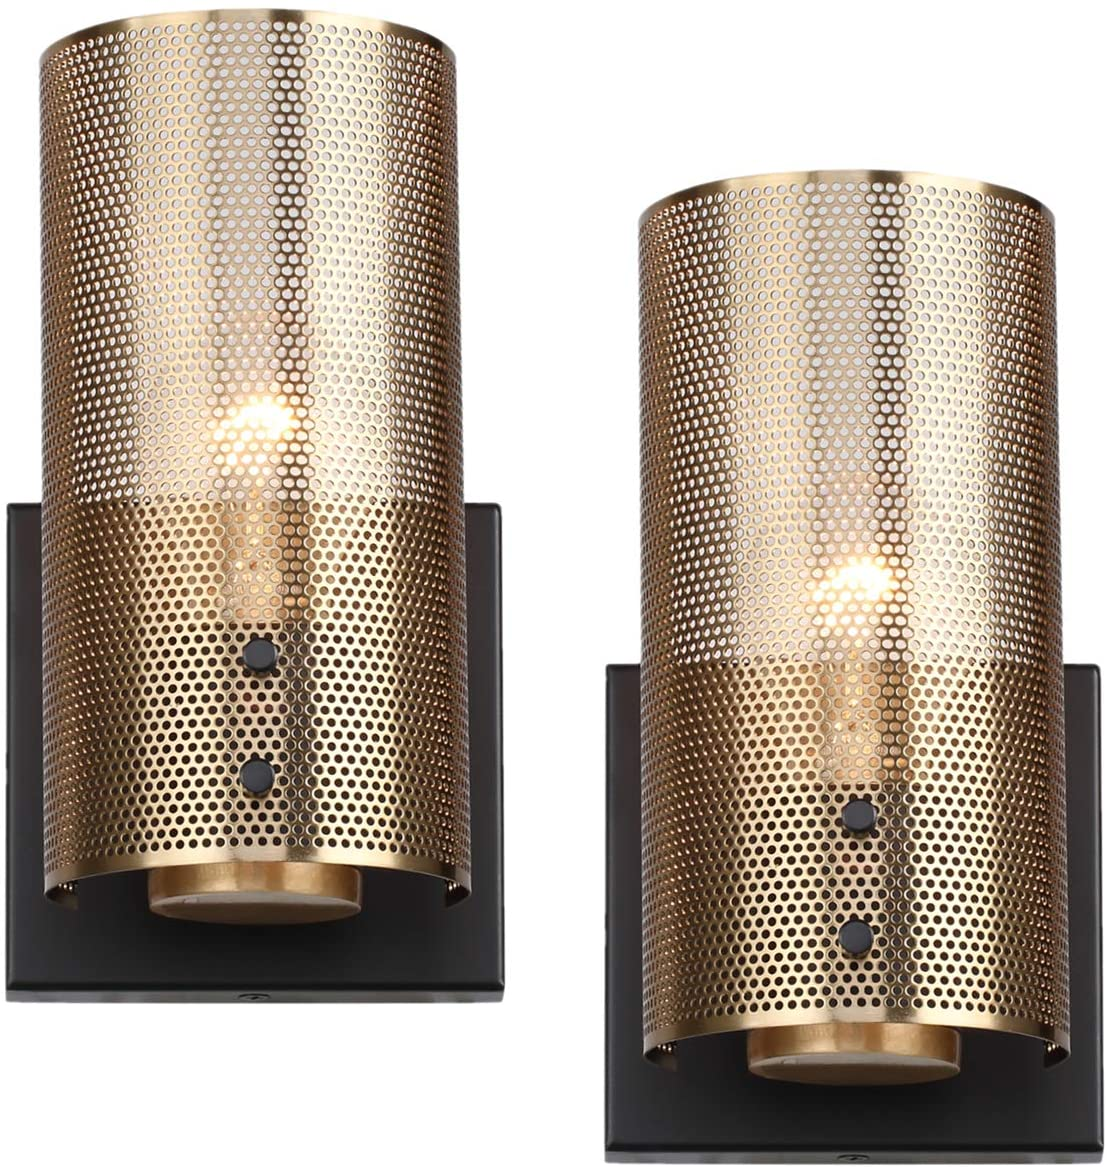 Hamilyeah Industrial Wall Sconces Set of Two, Vintage Brass Gold Sconces Wall Lighting Fixture with Grid Mesh Shade, Indoor Hardwired Wall Sconces for Bedroom Home Theater Bathroom, UL Listed